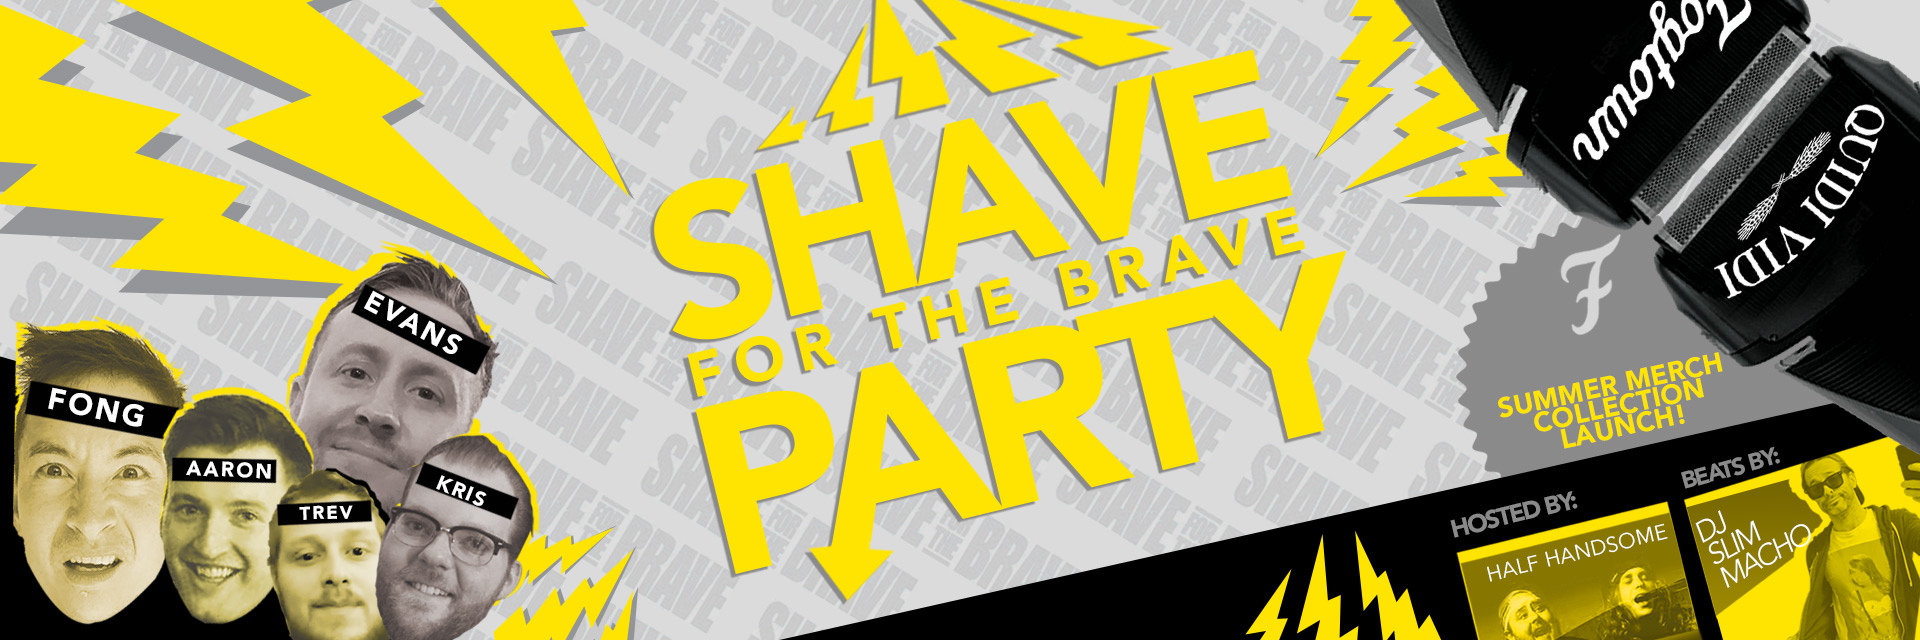 QV x Fogtown: Shave for a Cause